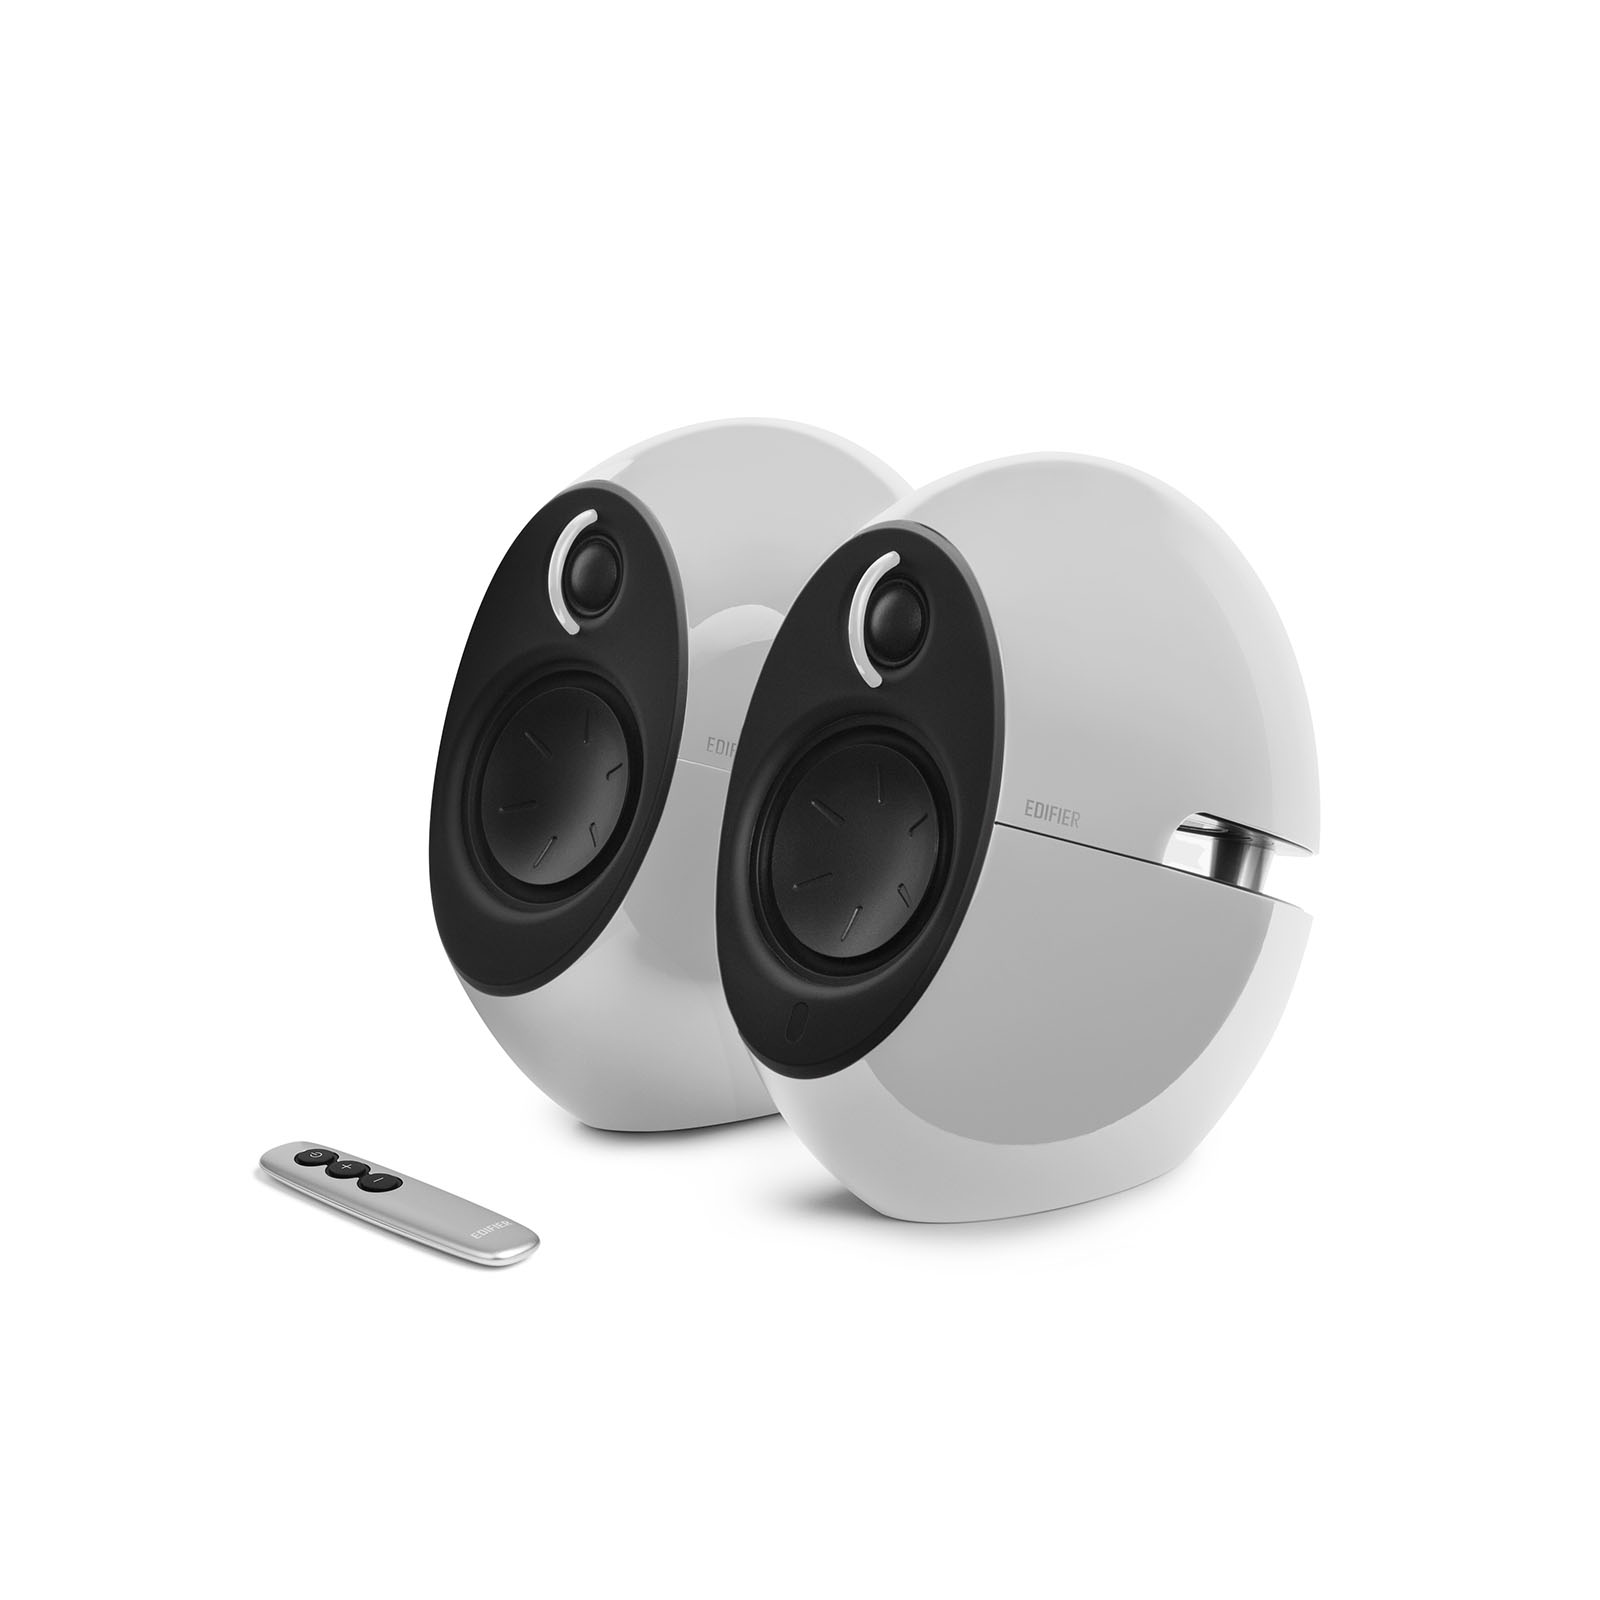 Edifier, E25HD, LUNA, HD, Bluetooth, Speakers, White, -, BT, 4.0/3.5mm, AUX/Optical, DSP/, 74W, Speakers/, Curved, design/Dual, 2x3, Pass,